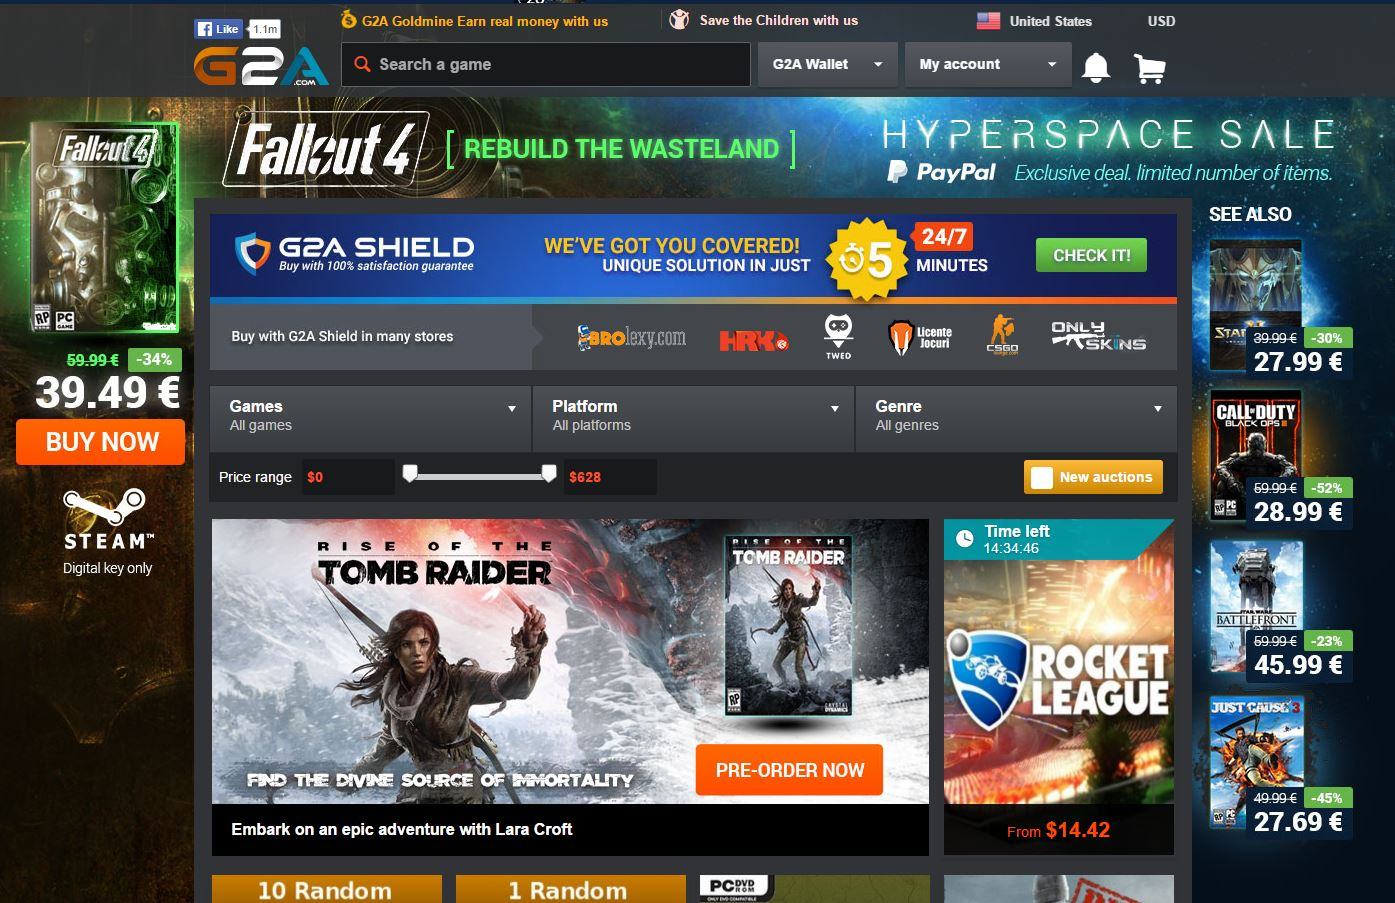 G2A Promo Codes and Deals